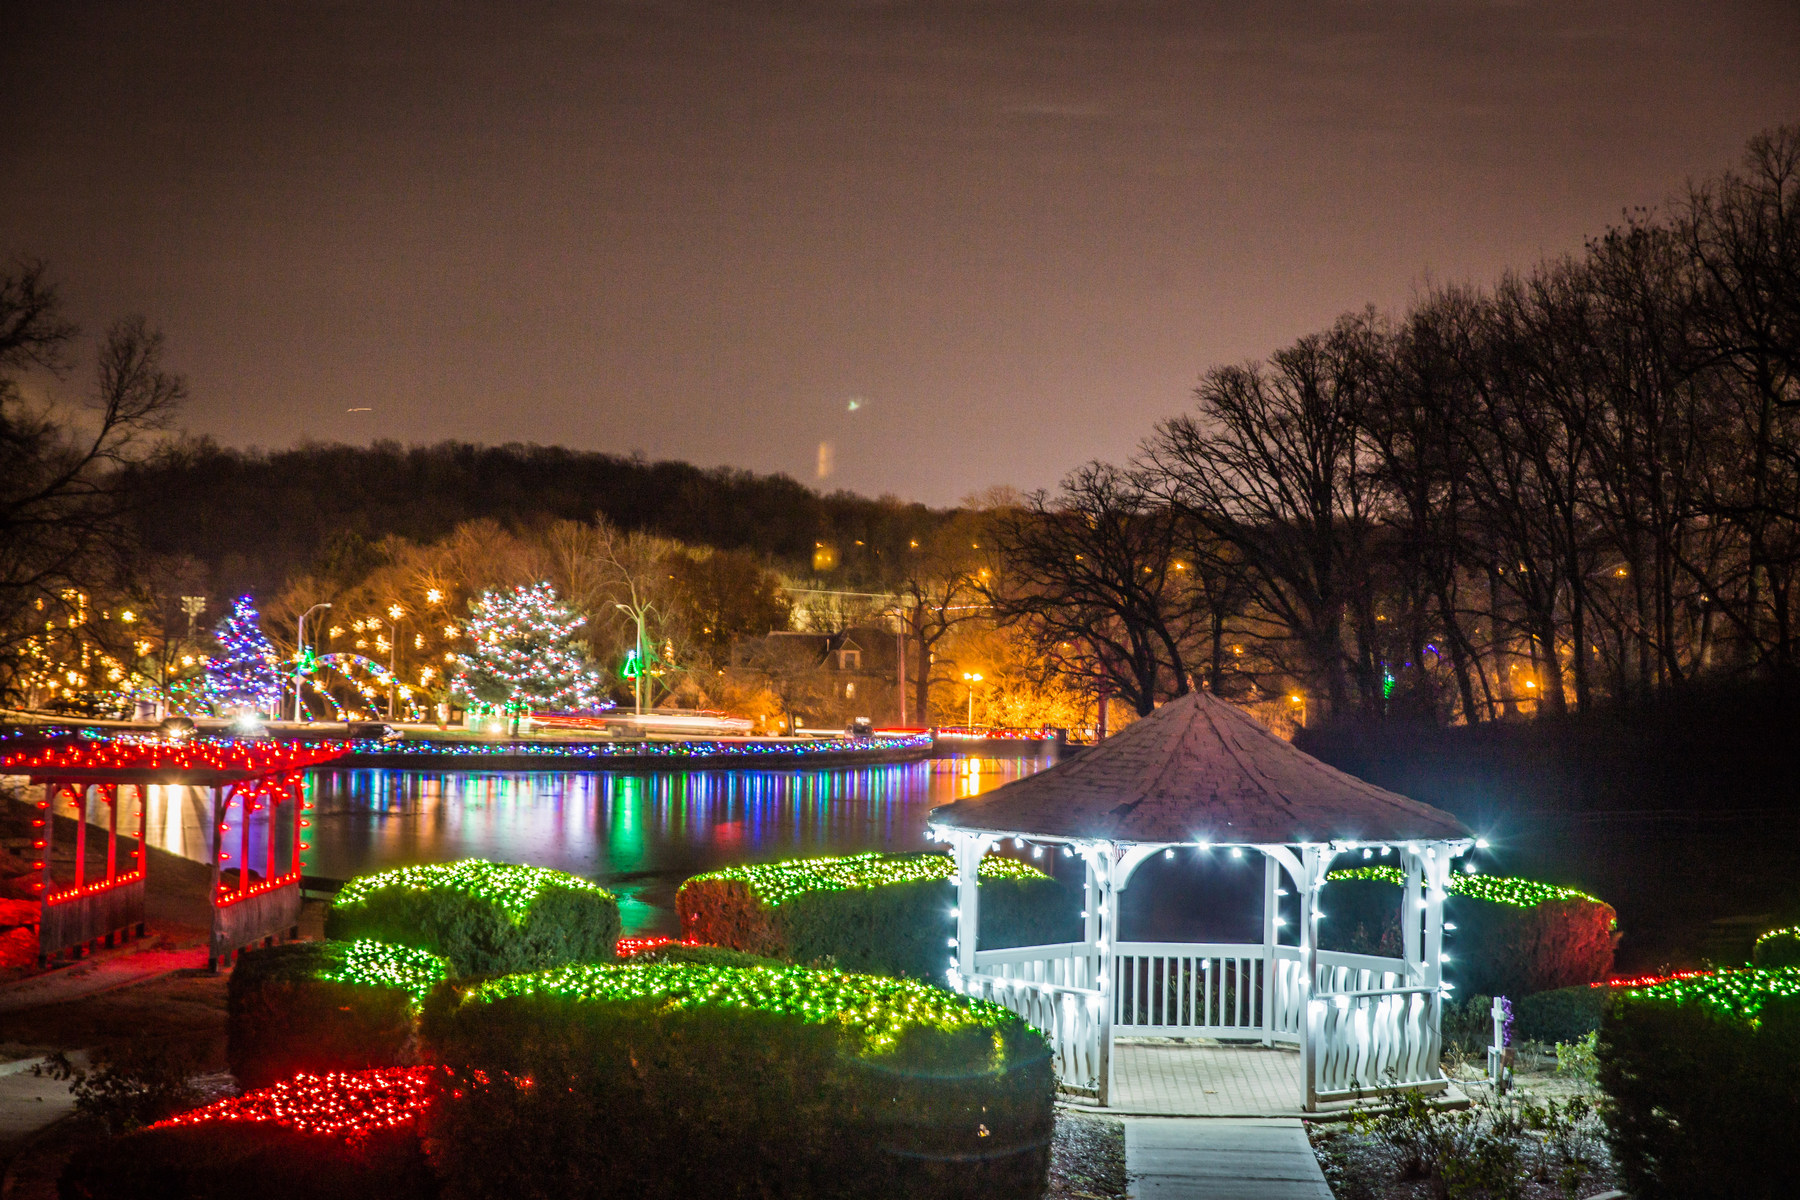 Colored lights on display at Krug Park during its transformation into Holiday Park in St. Joseph, MO